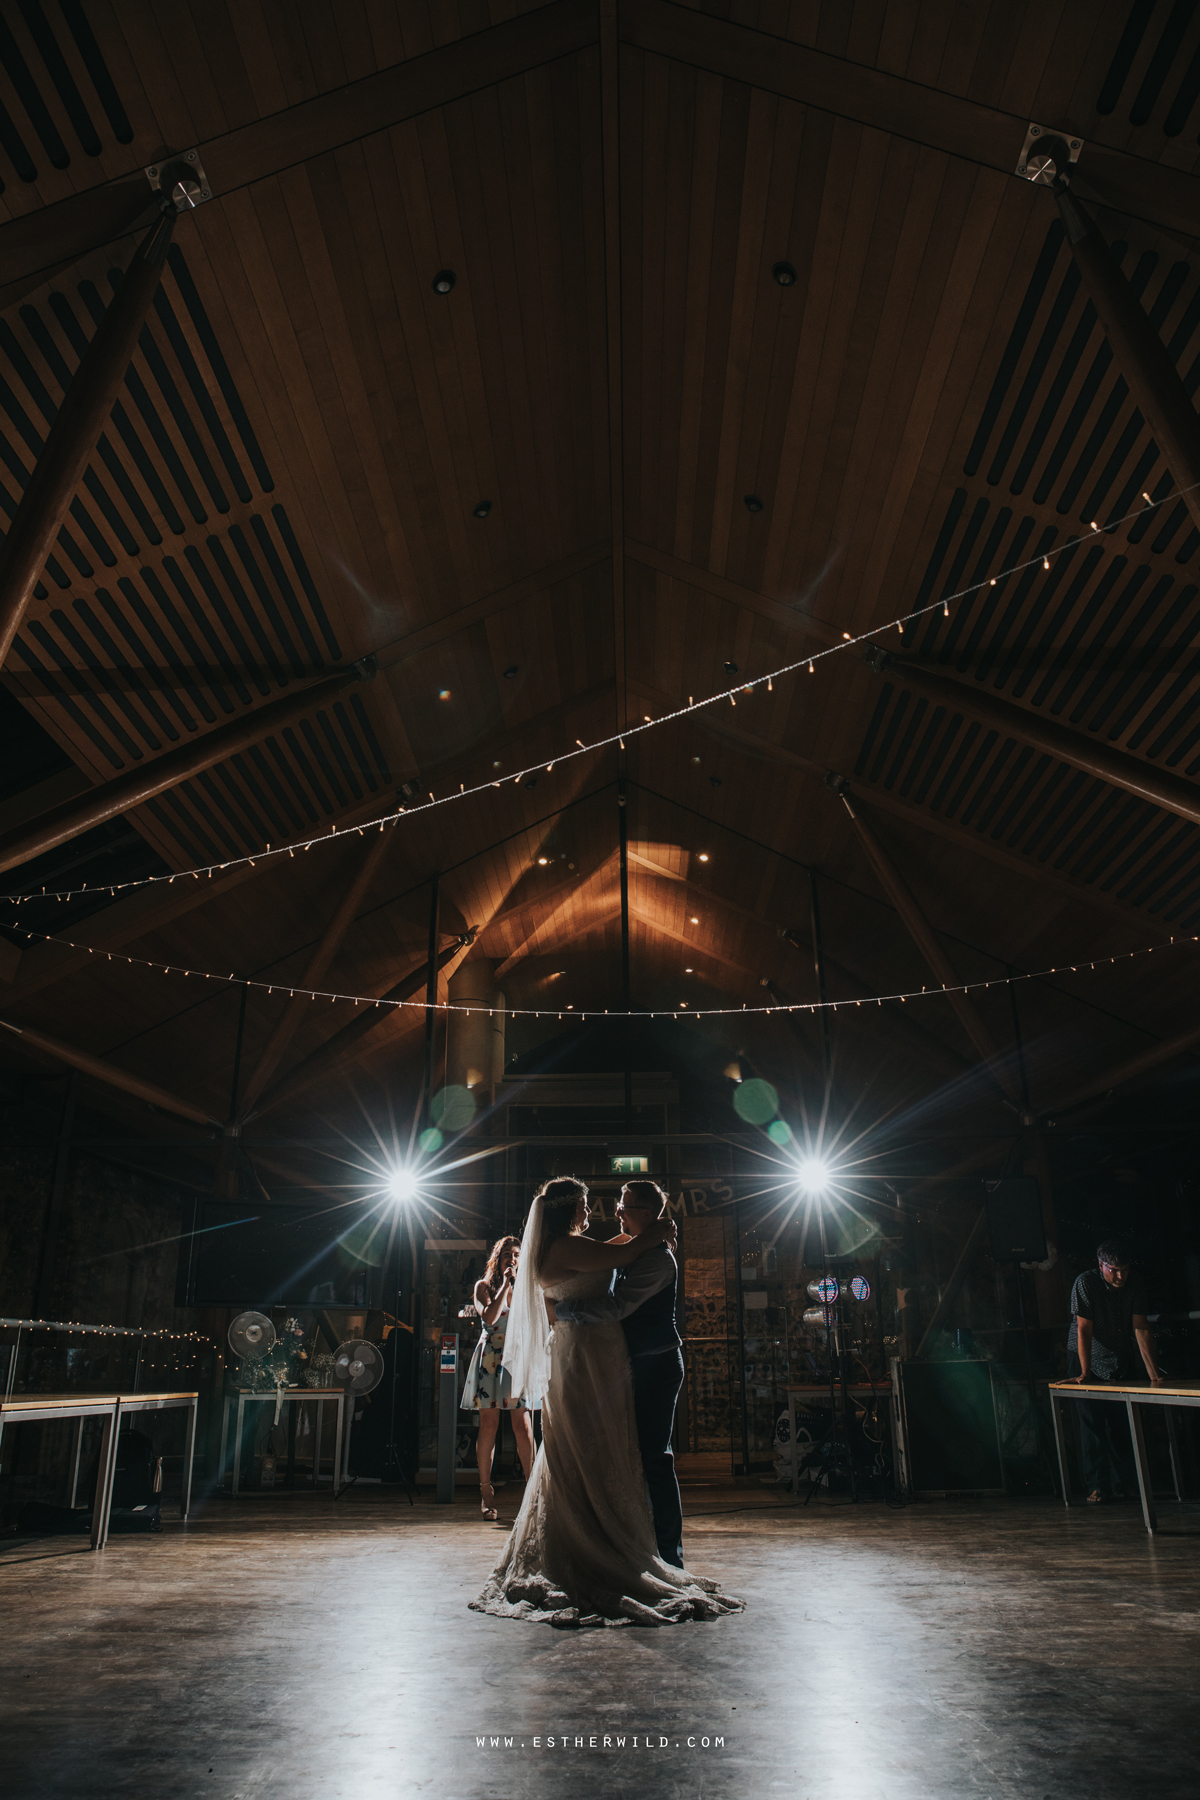 Norwich_Castle_Arcade_Grosvenor_Chip_Birdcage_Cathedral_Cloisters_Refectory_Wedding_Photography_Esther_Wild_Photographer_Norfolk_Kings_Lynn_3R8A3223.jpg